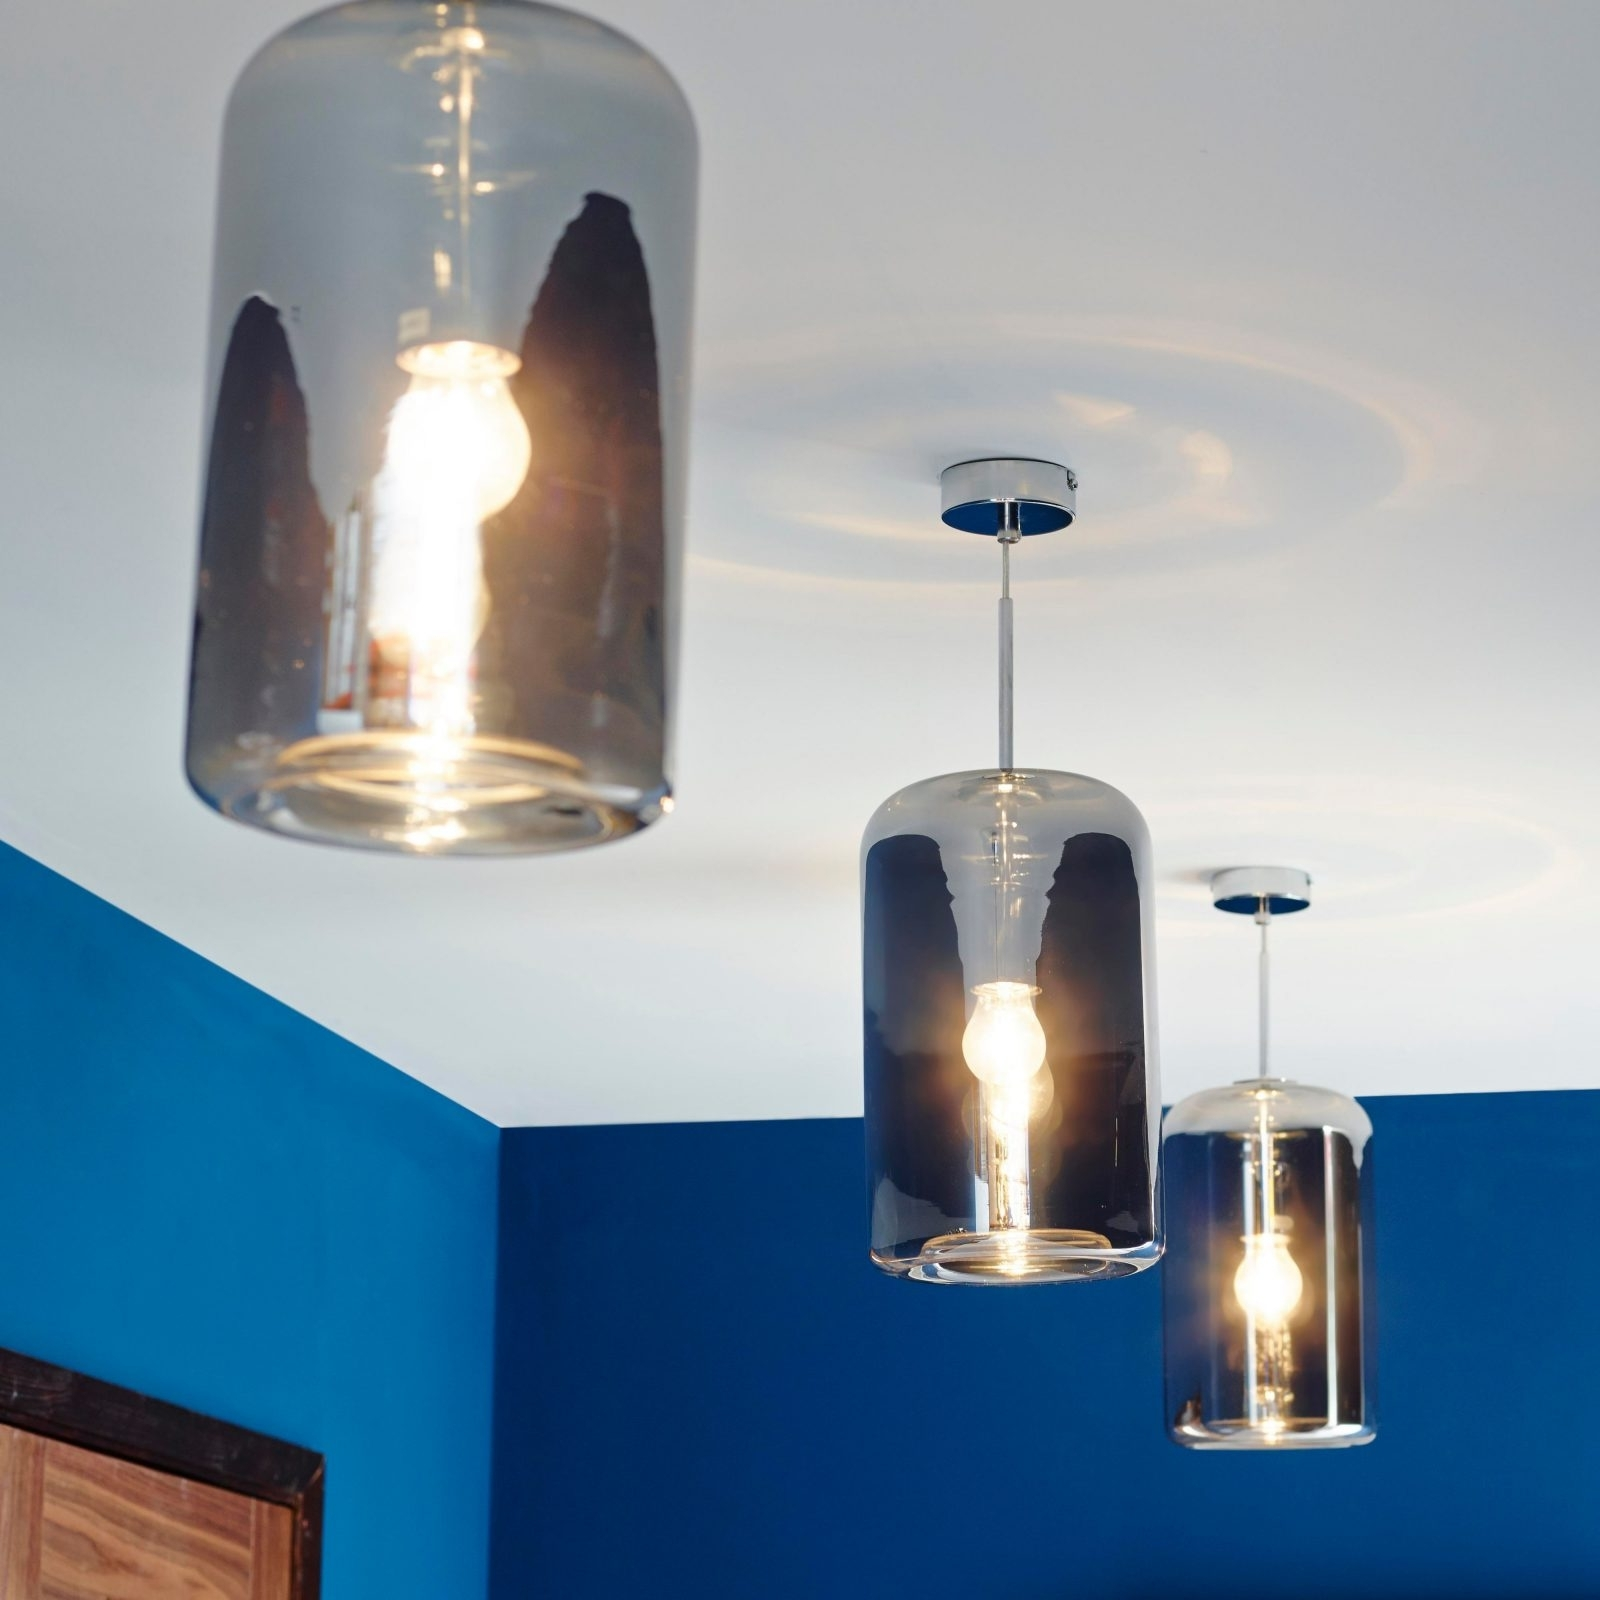 2018 Outdoor Wall Lighting At B&q Regarding Bathroom Wall Lights Bq Pimlico Light Toilet Room Ideas Pinterest (View 2 of 20)